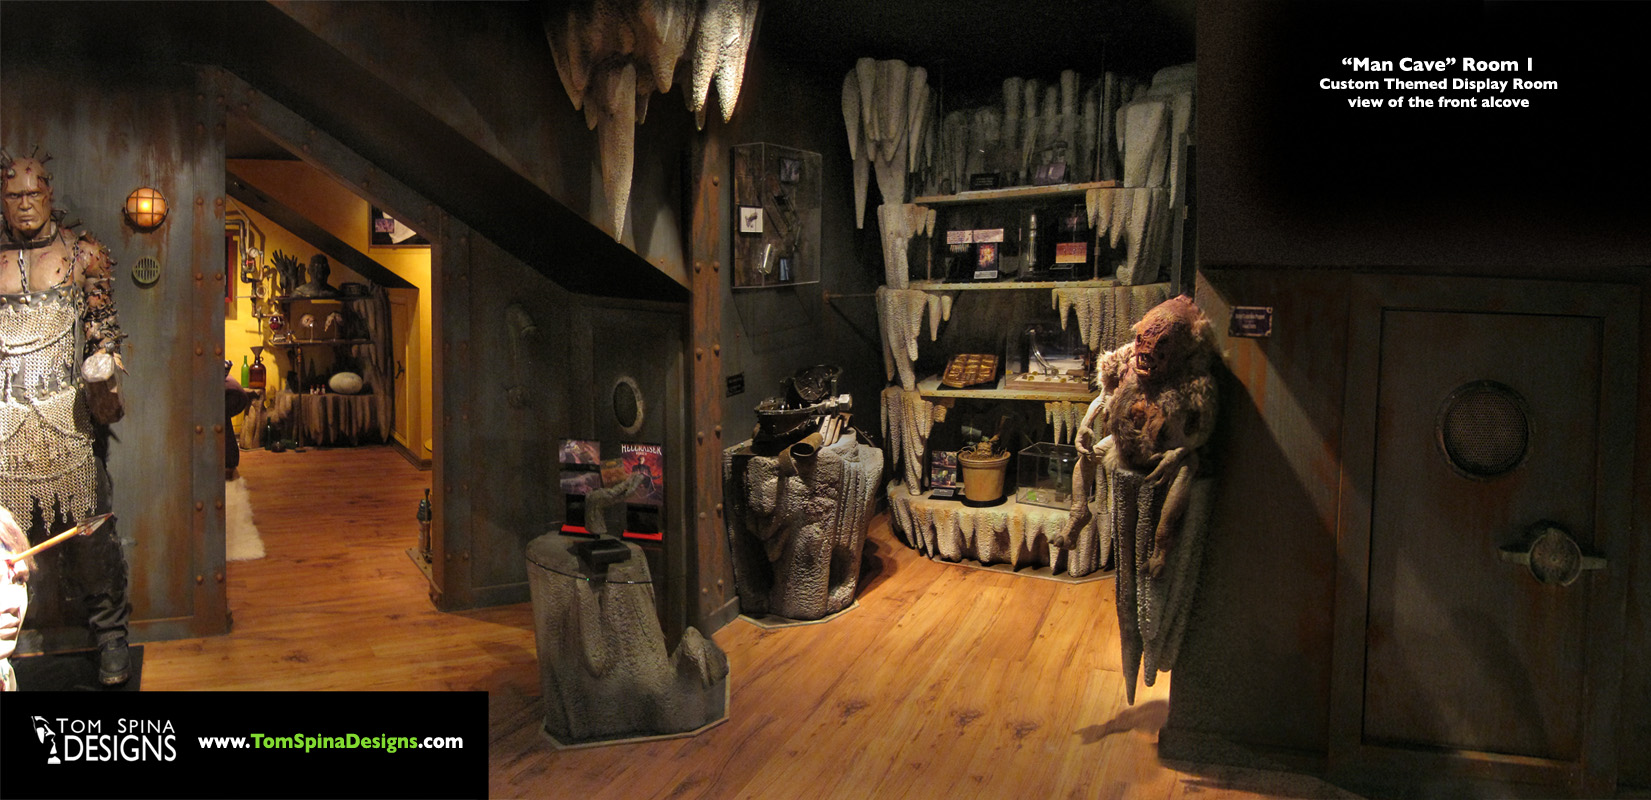 custom man cave themed movie props display room man cave home theater horror home